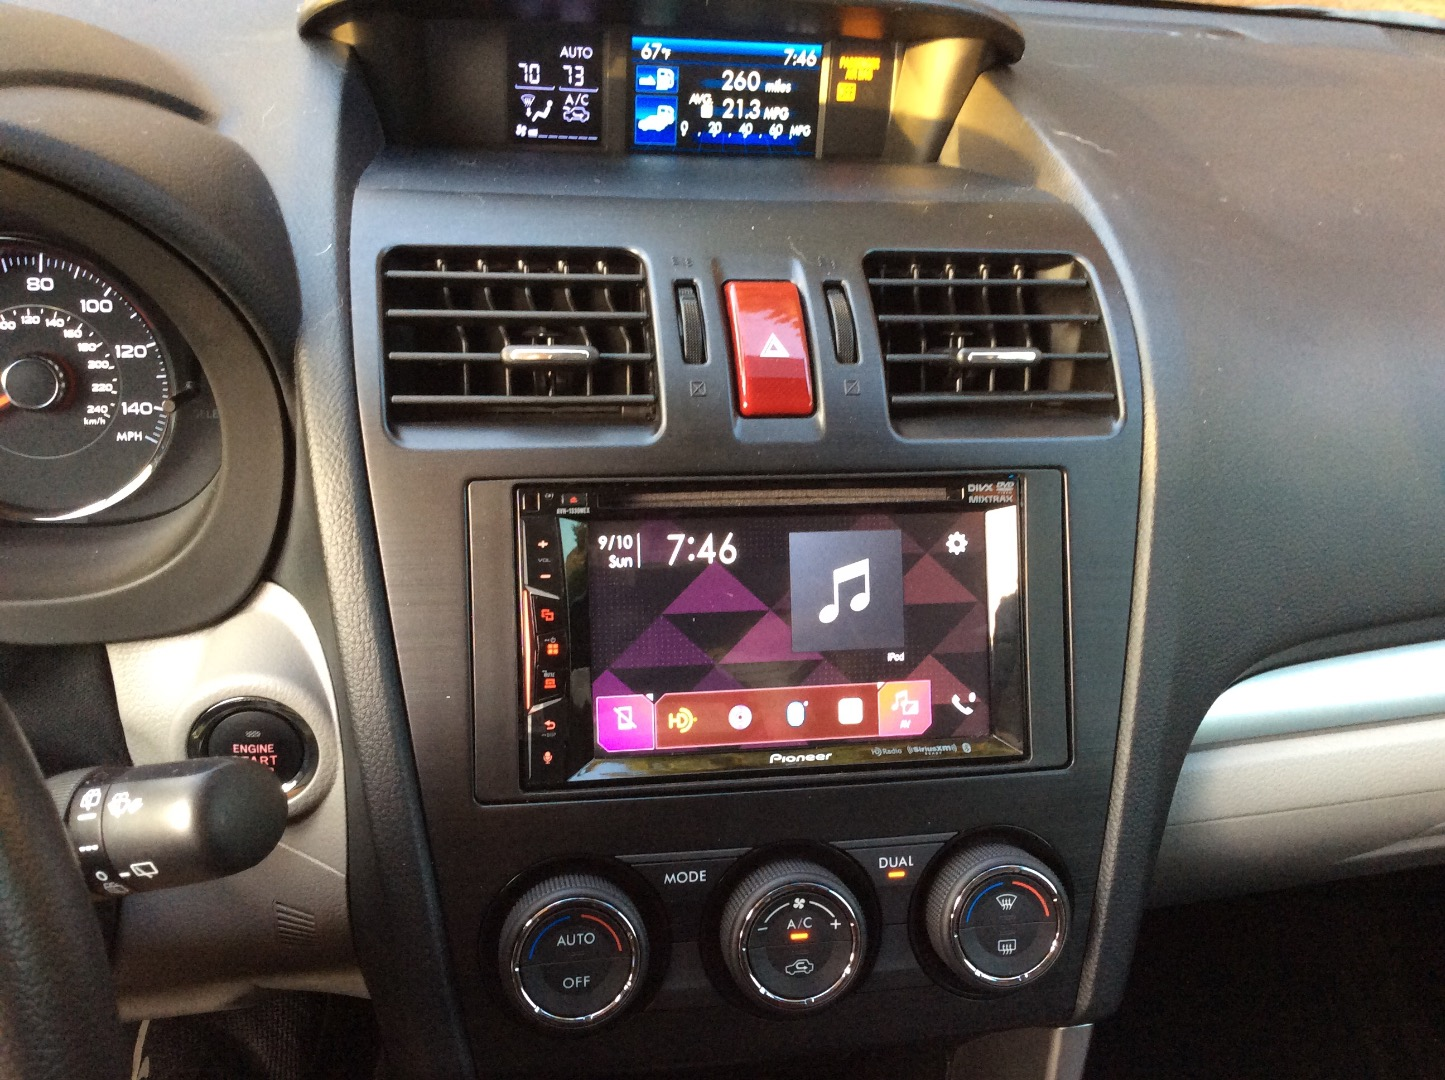 Pioneer AVH-1330NEX DVD receiver at Crutchfield